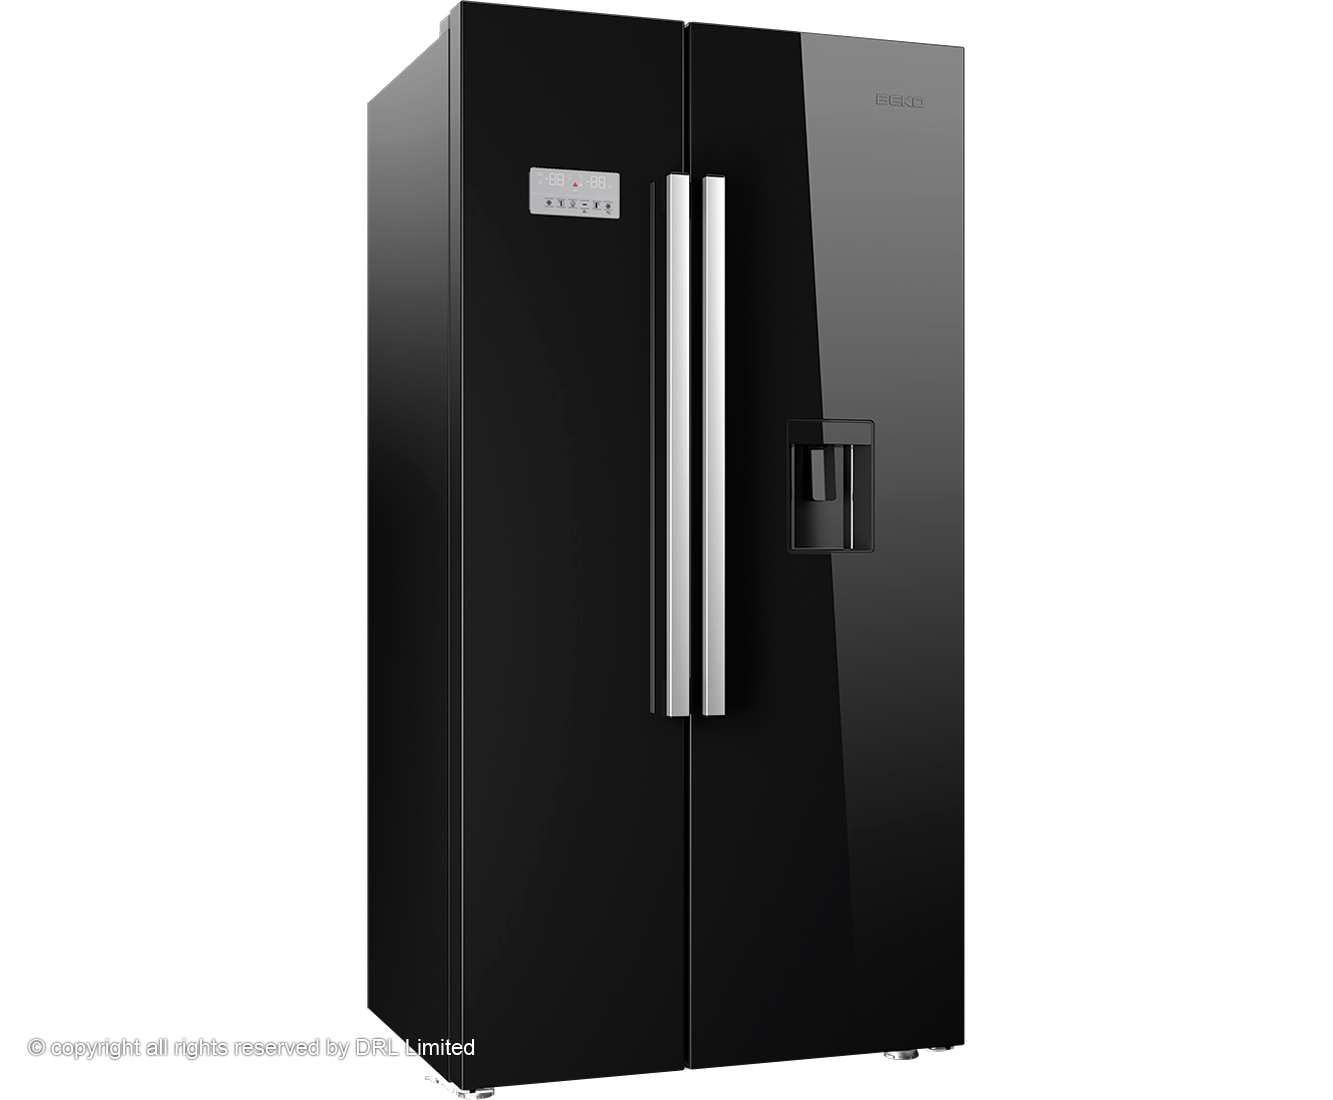 Beko ASD241B American Fridge Freezer - Black Gloss